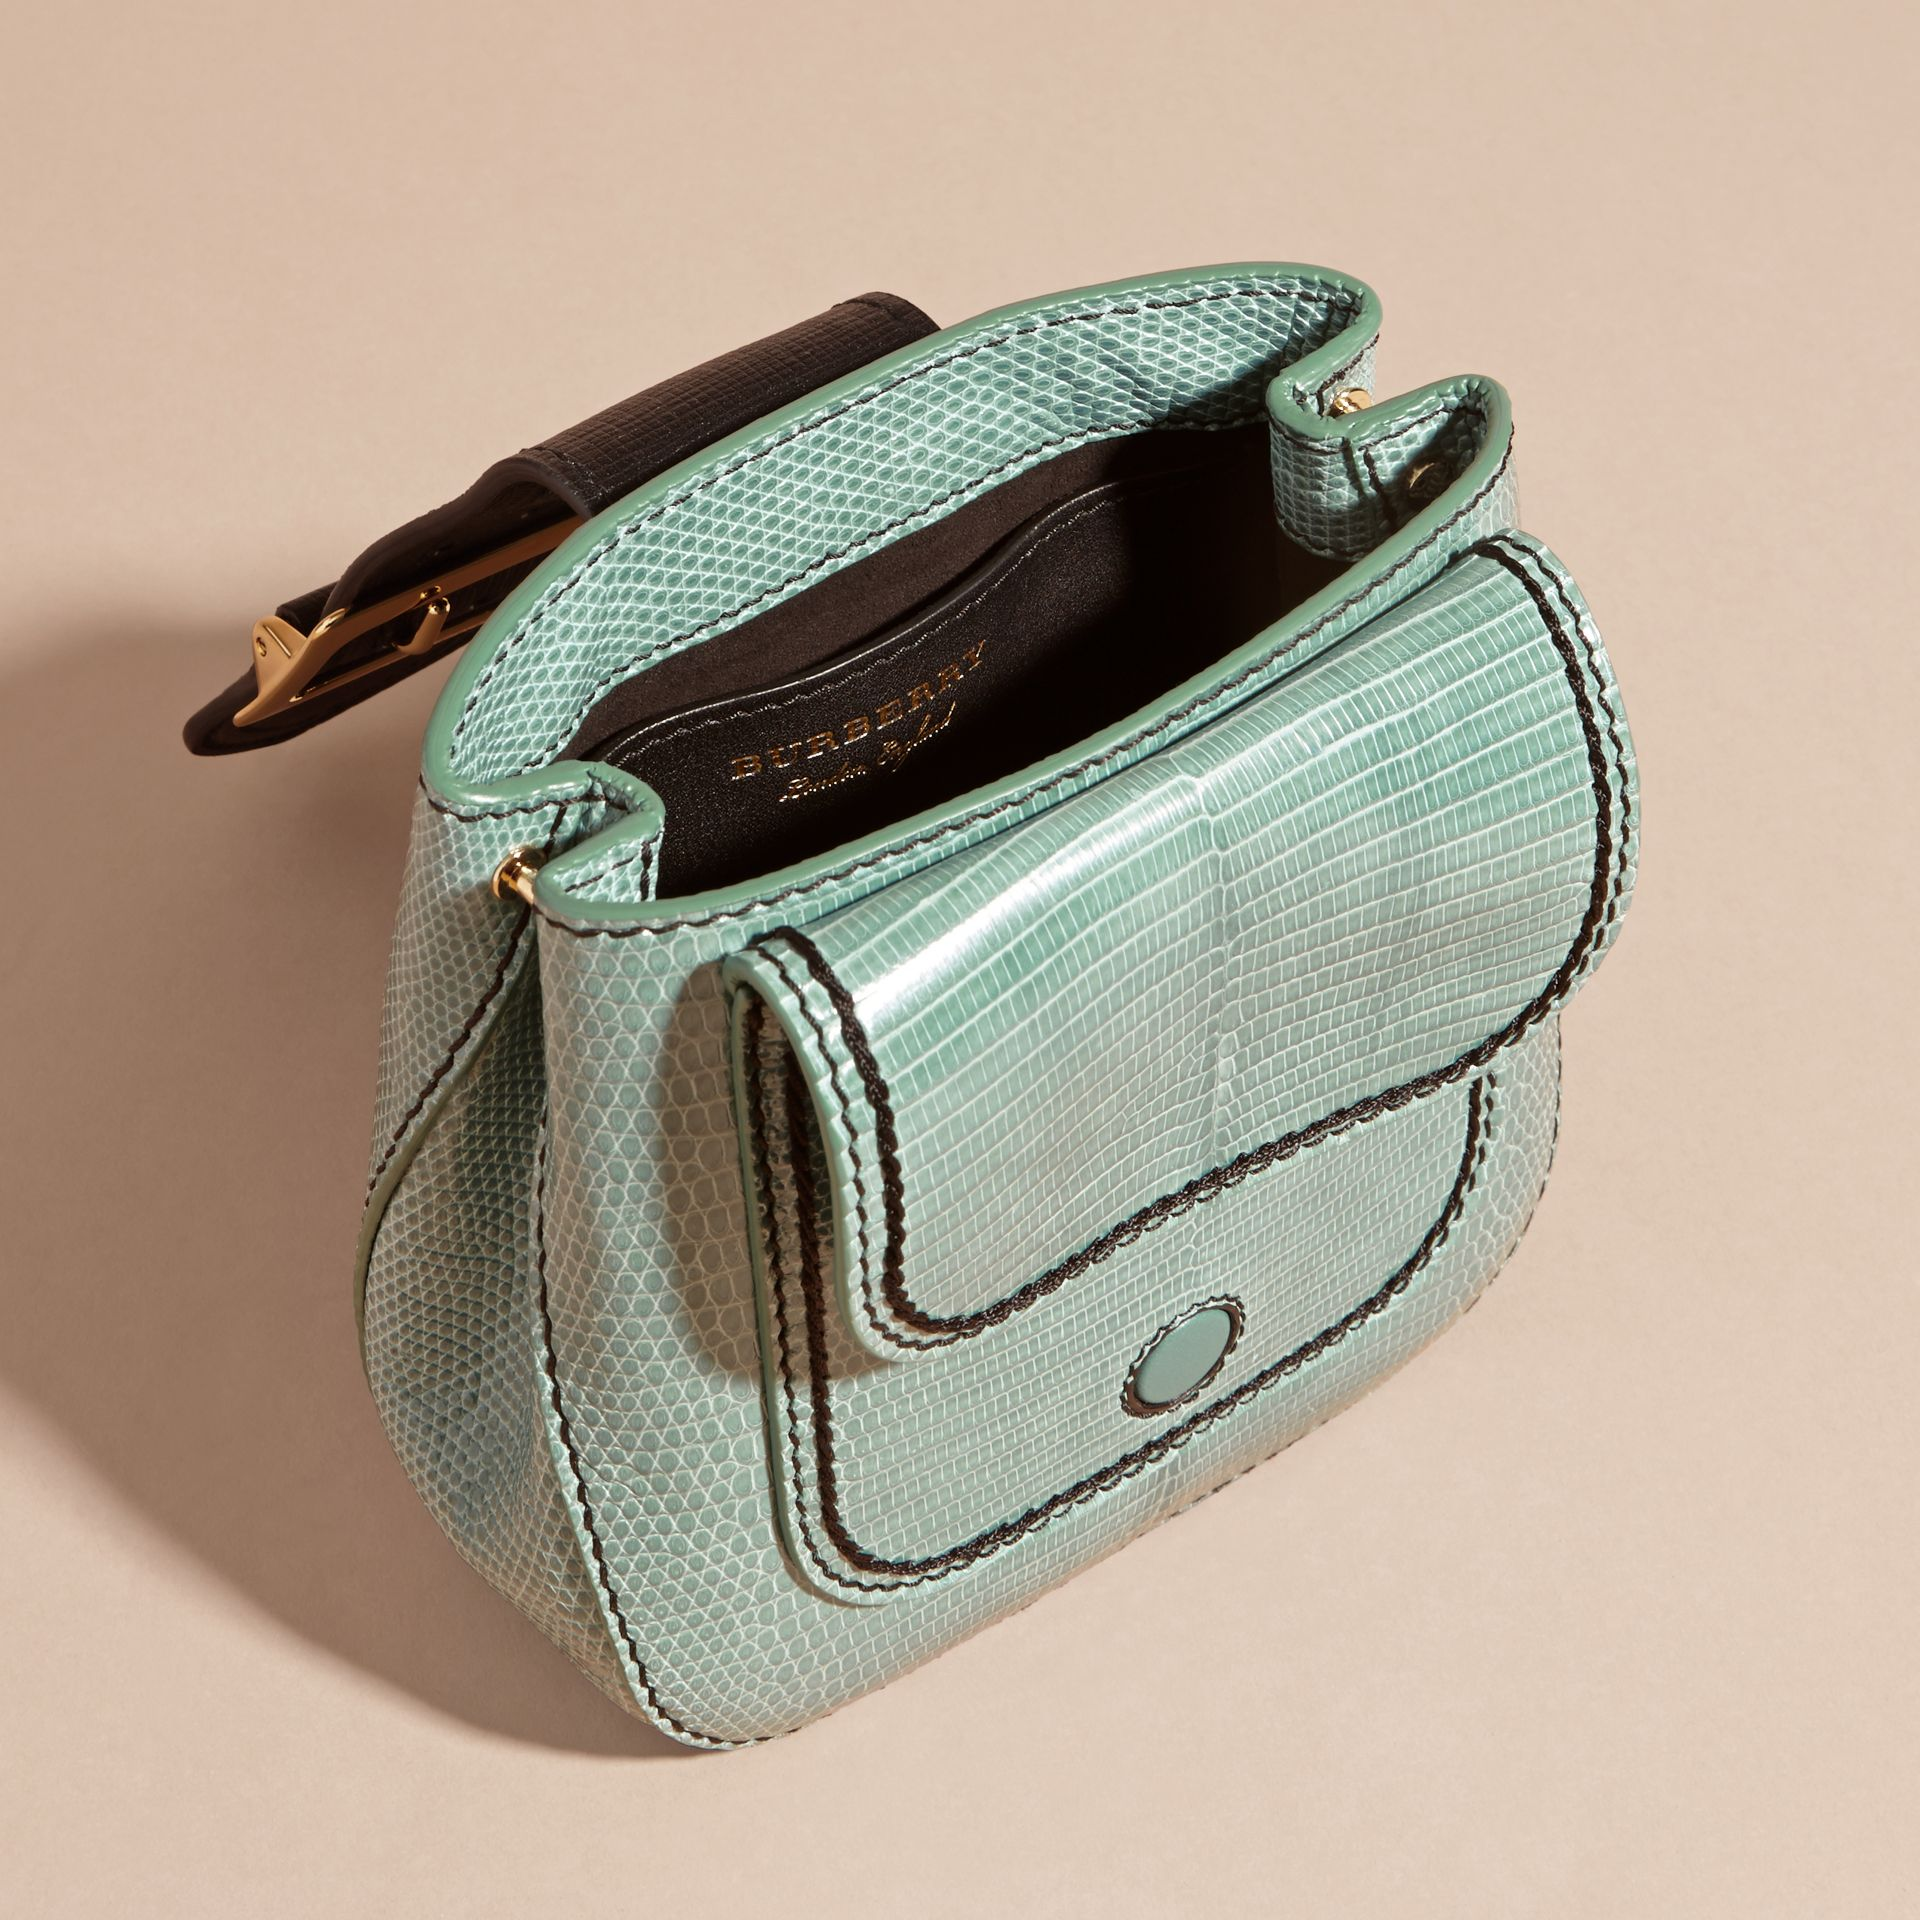 Dusty mint The Small Square Buckle Bag in Lizard - gallery image 4